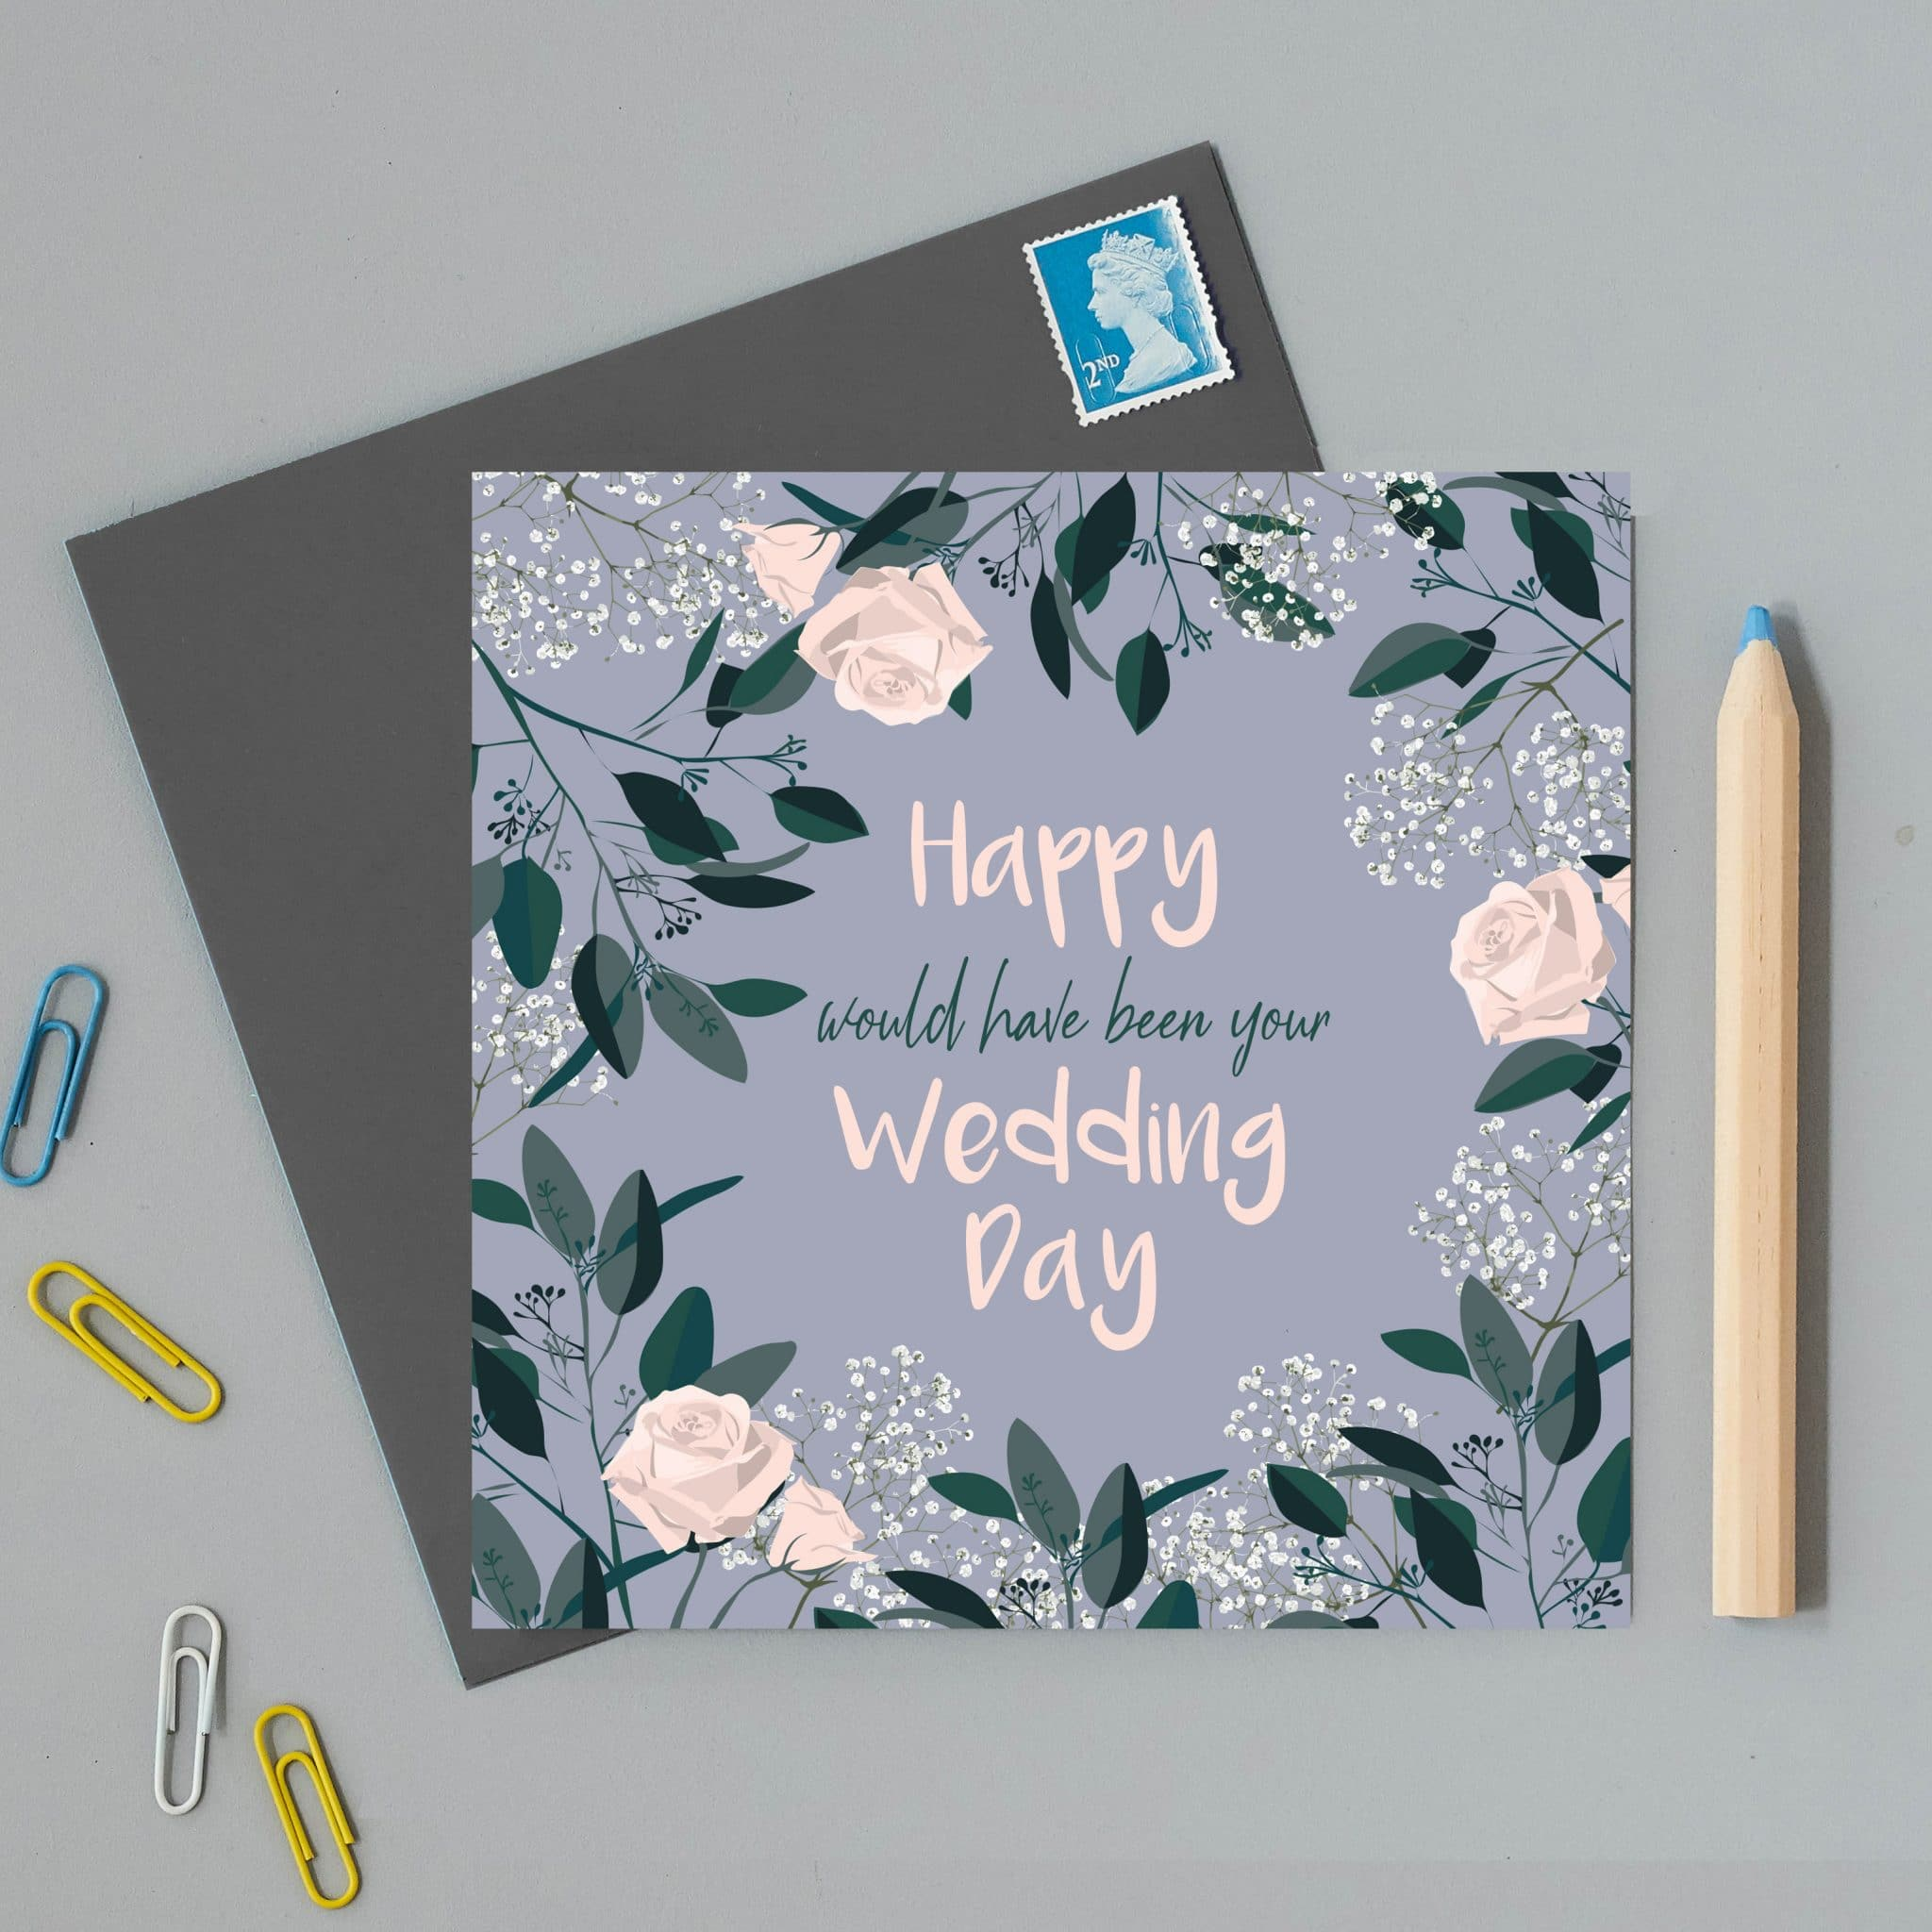 happy would have been your wedding day greeting card